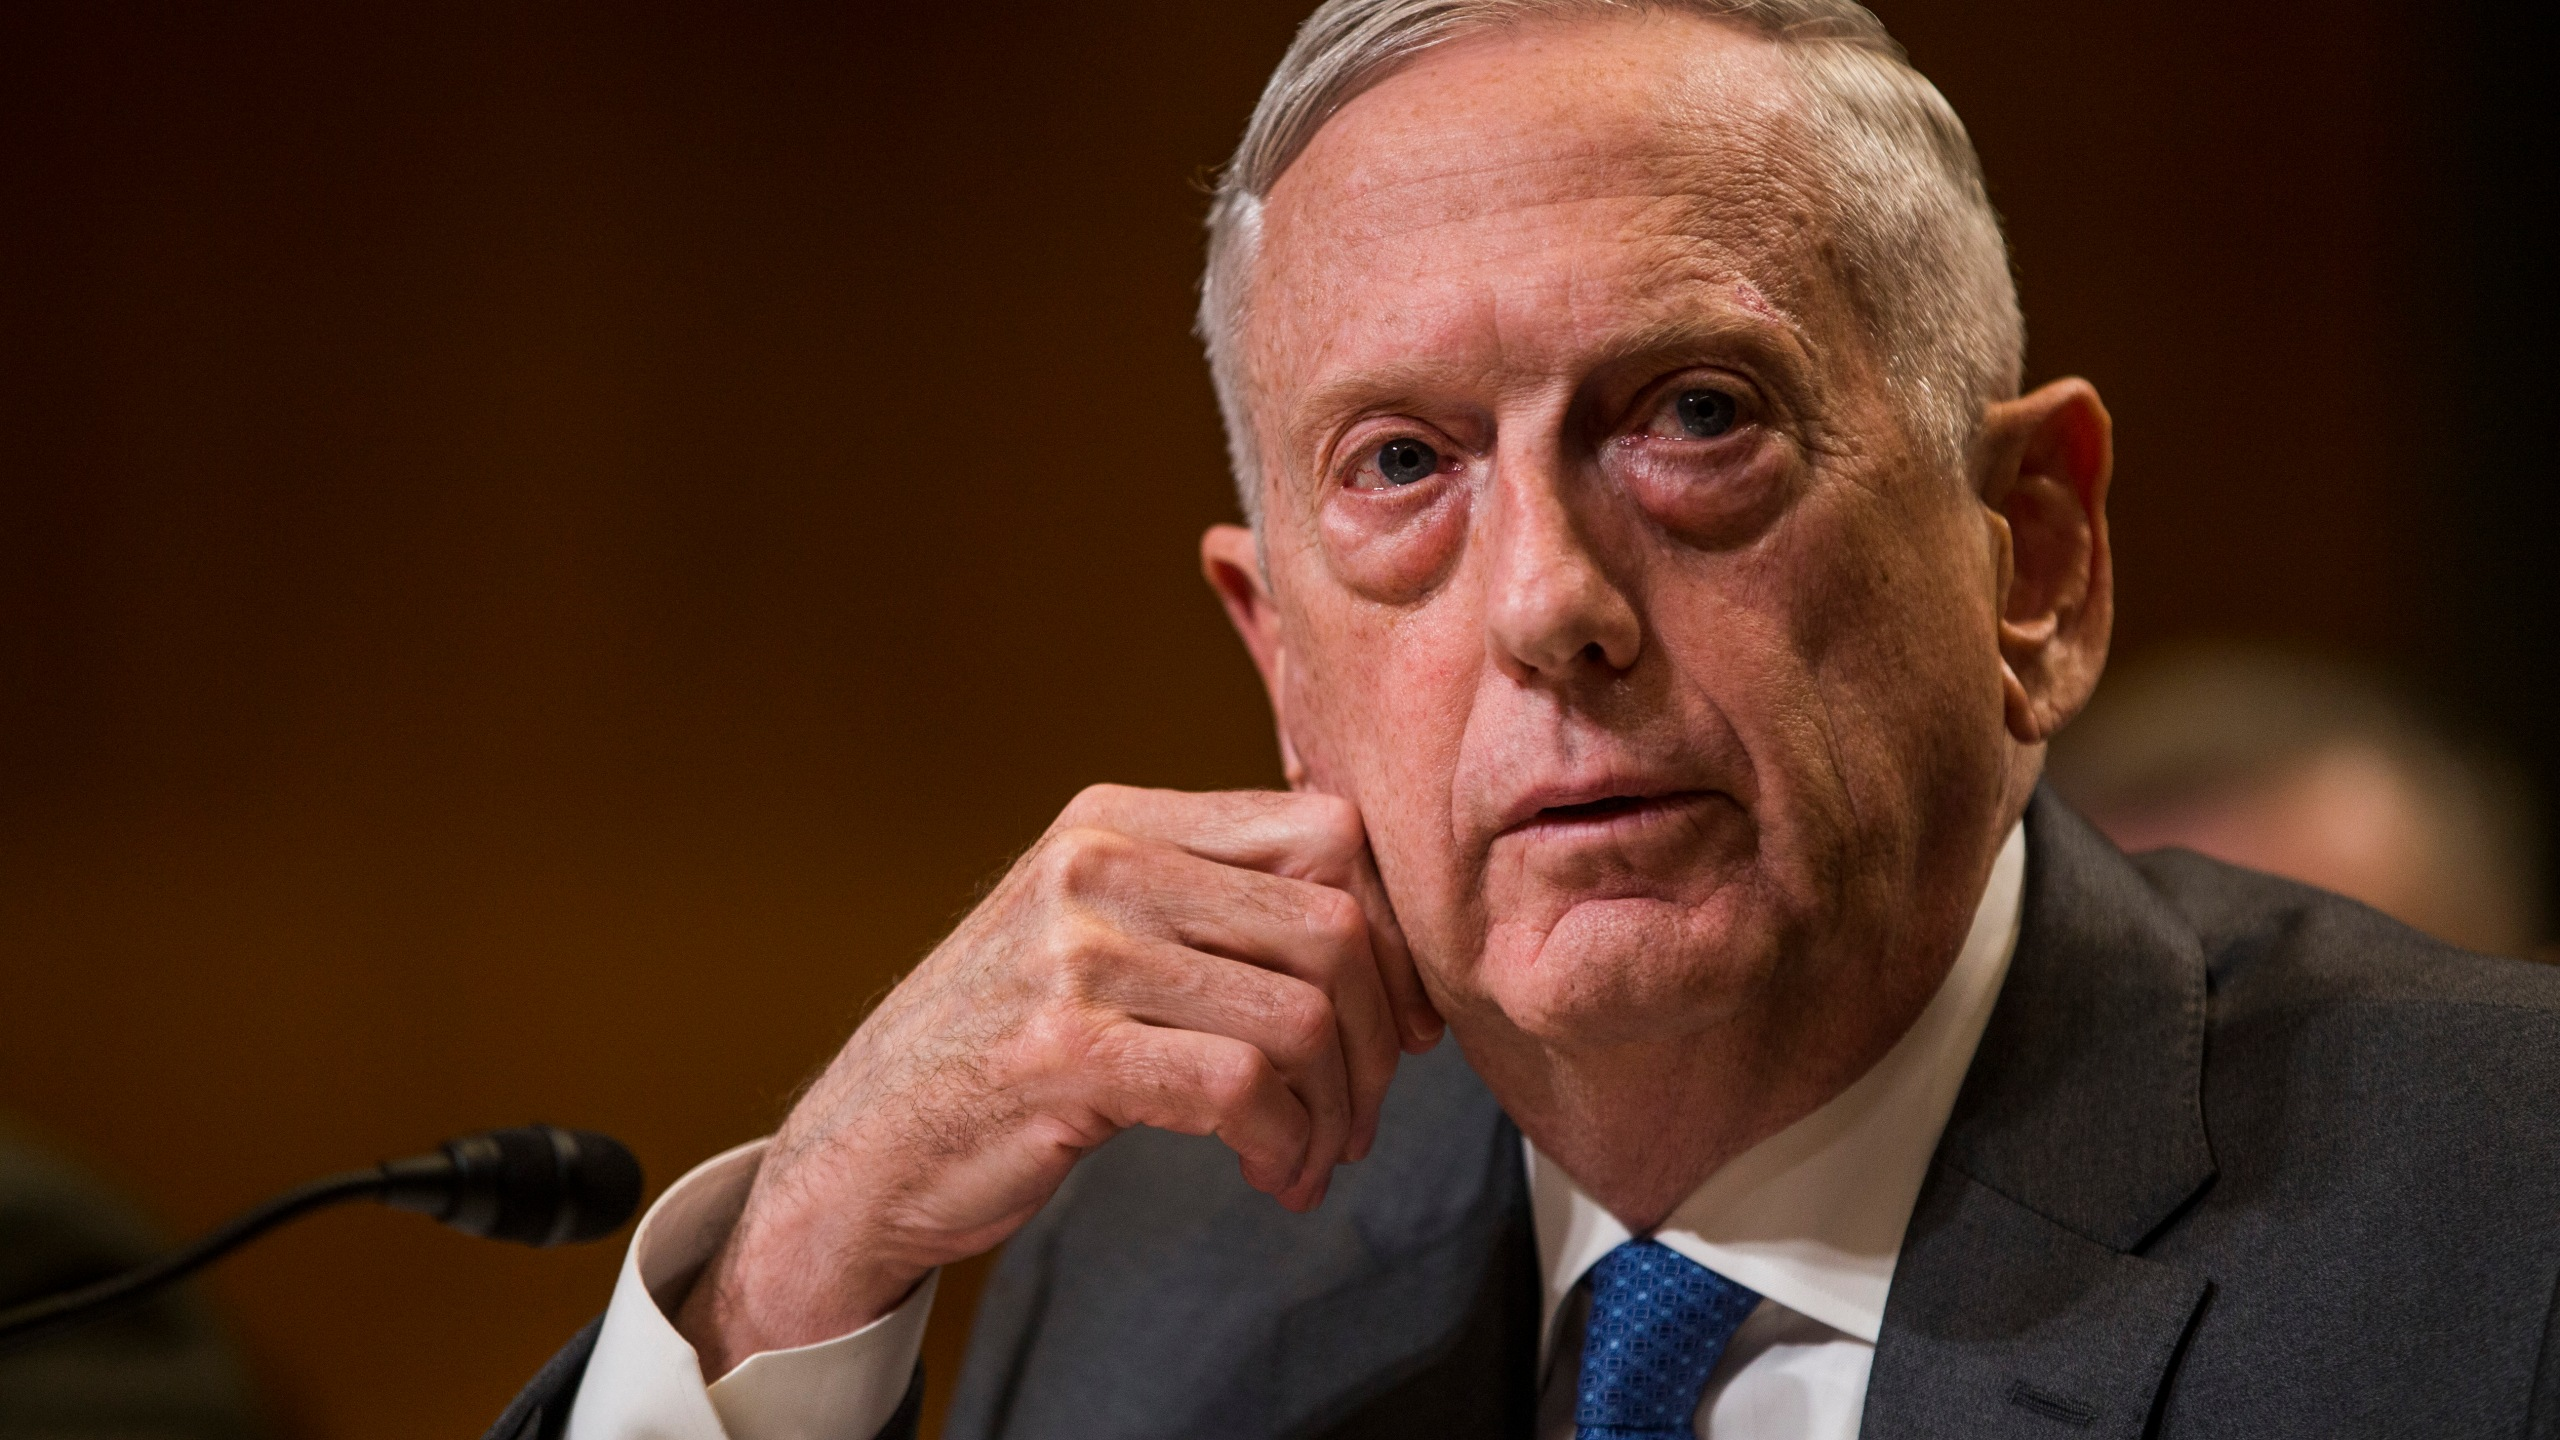 Secretary of Defense James Mattis testifies during a Senate Appropriations Subcommittee on Defense hearing on May 9, 2018, in Washington, D.C. (Credit: Zach Gibson/Getty Images)